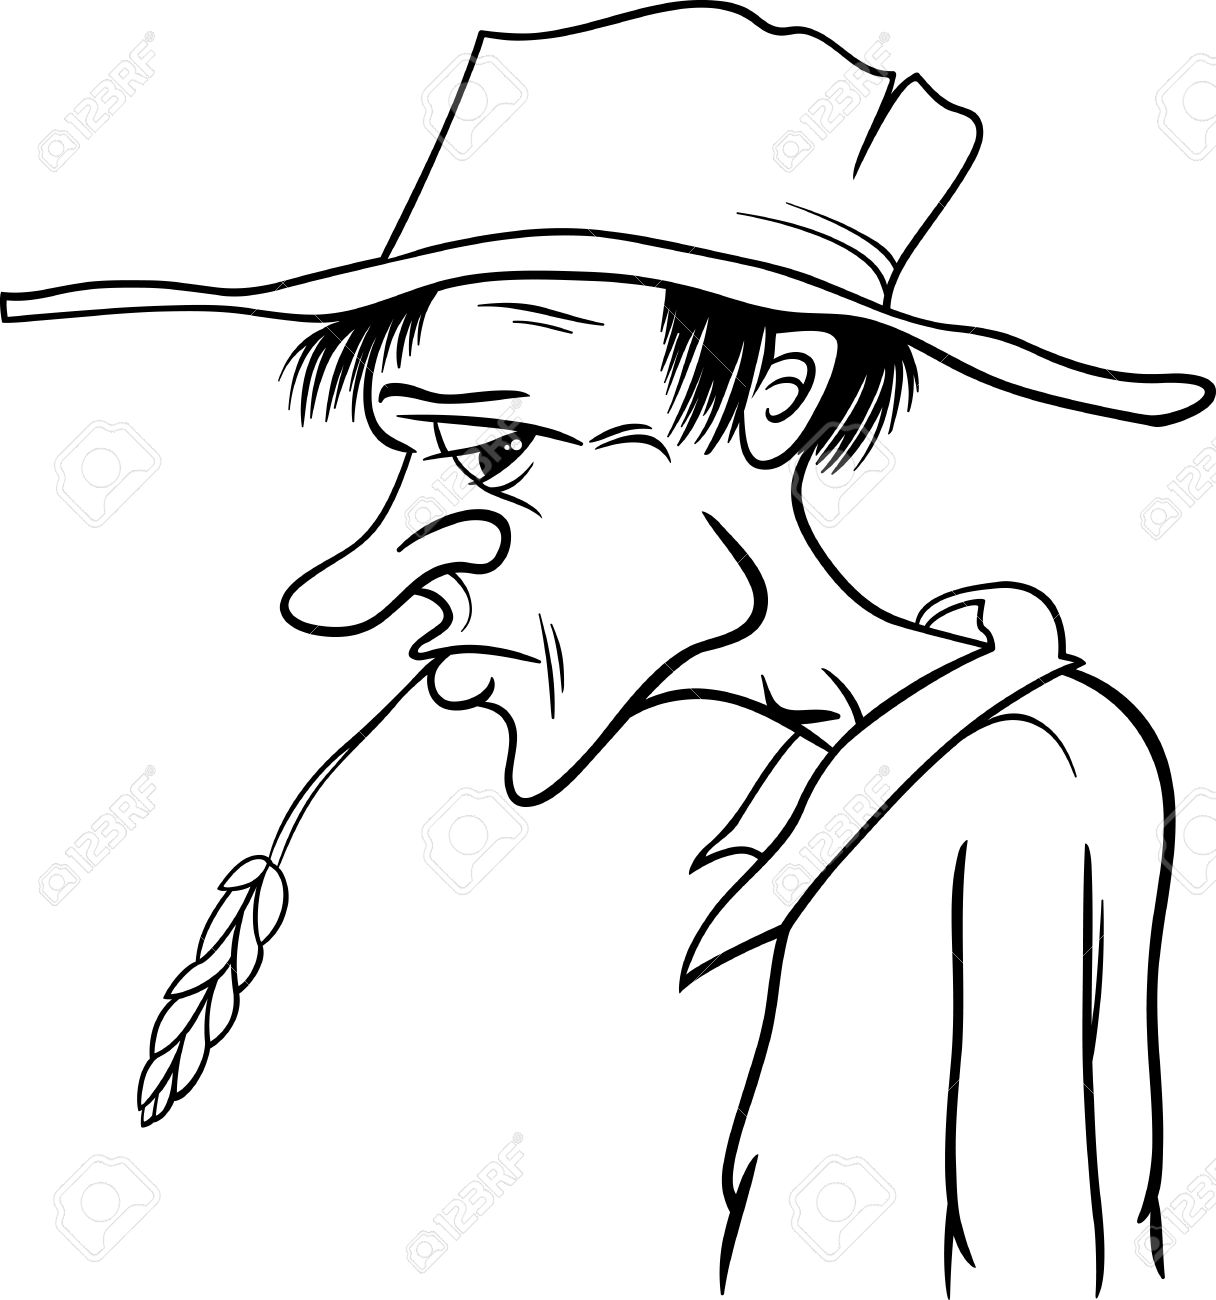 1216x1300 Black And White Cartoon Illustration Of Farmer Or Cowboy In